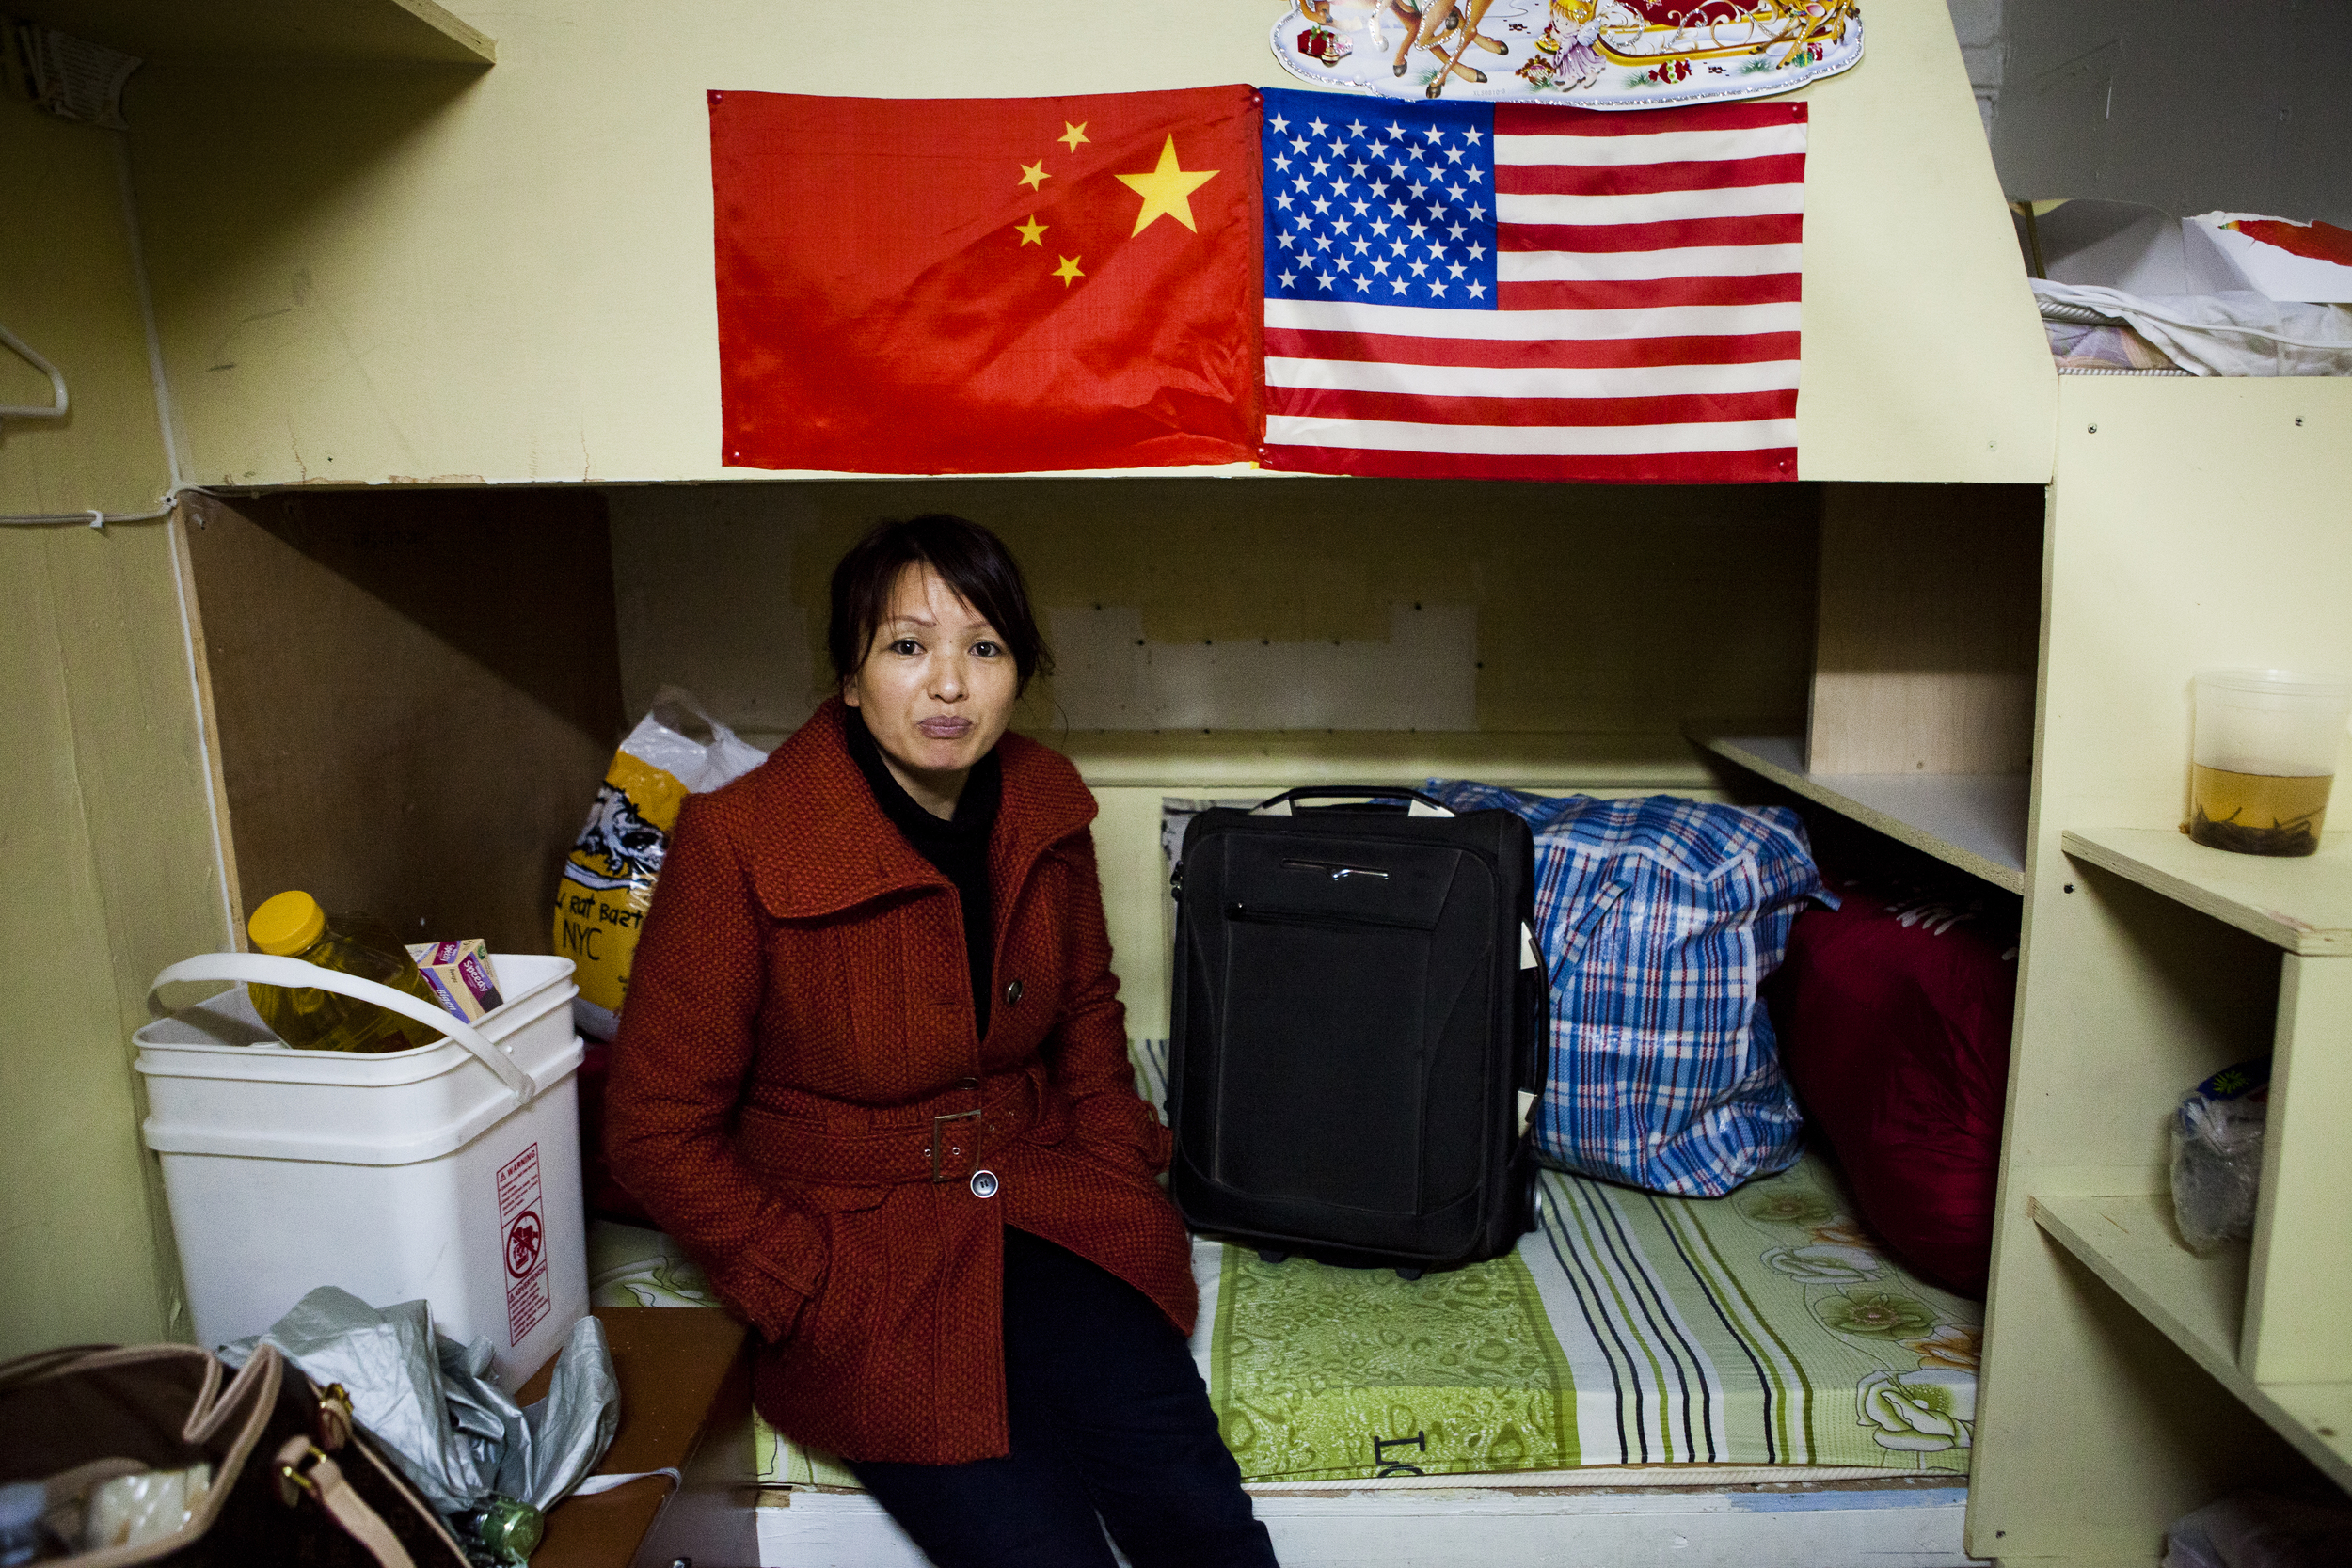 Chin Tu Yu in cubicle #6 at 81 Bowery packed a few possessions in the final minutes before vacating the building the evening of March 7th. Tu Yu Chin just arrived in US one month ago to join her husband who she hasn't seen in eight years. Chin currently works long hours at a laundromat in Chinatown. ©Annie Ling